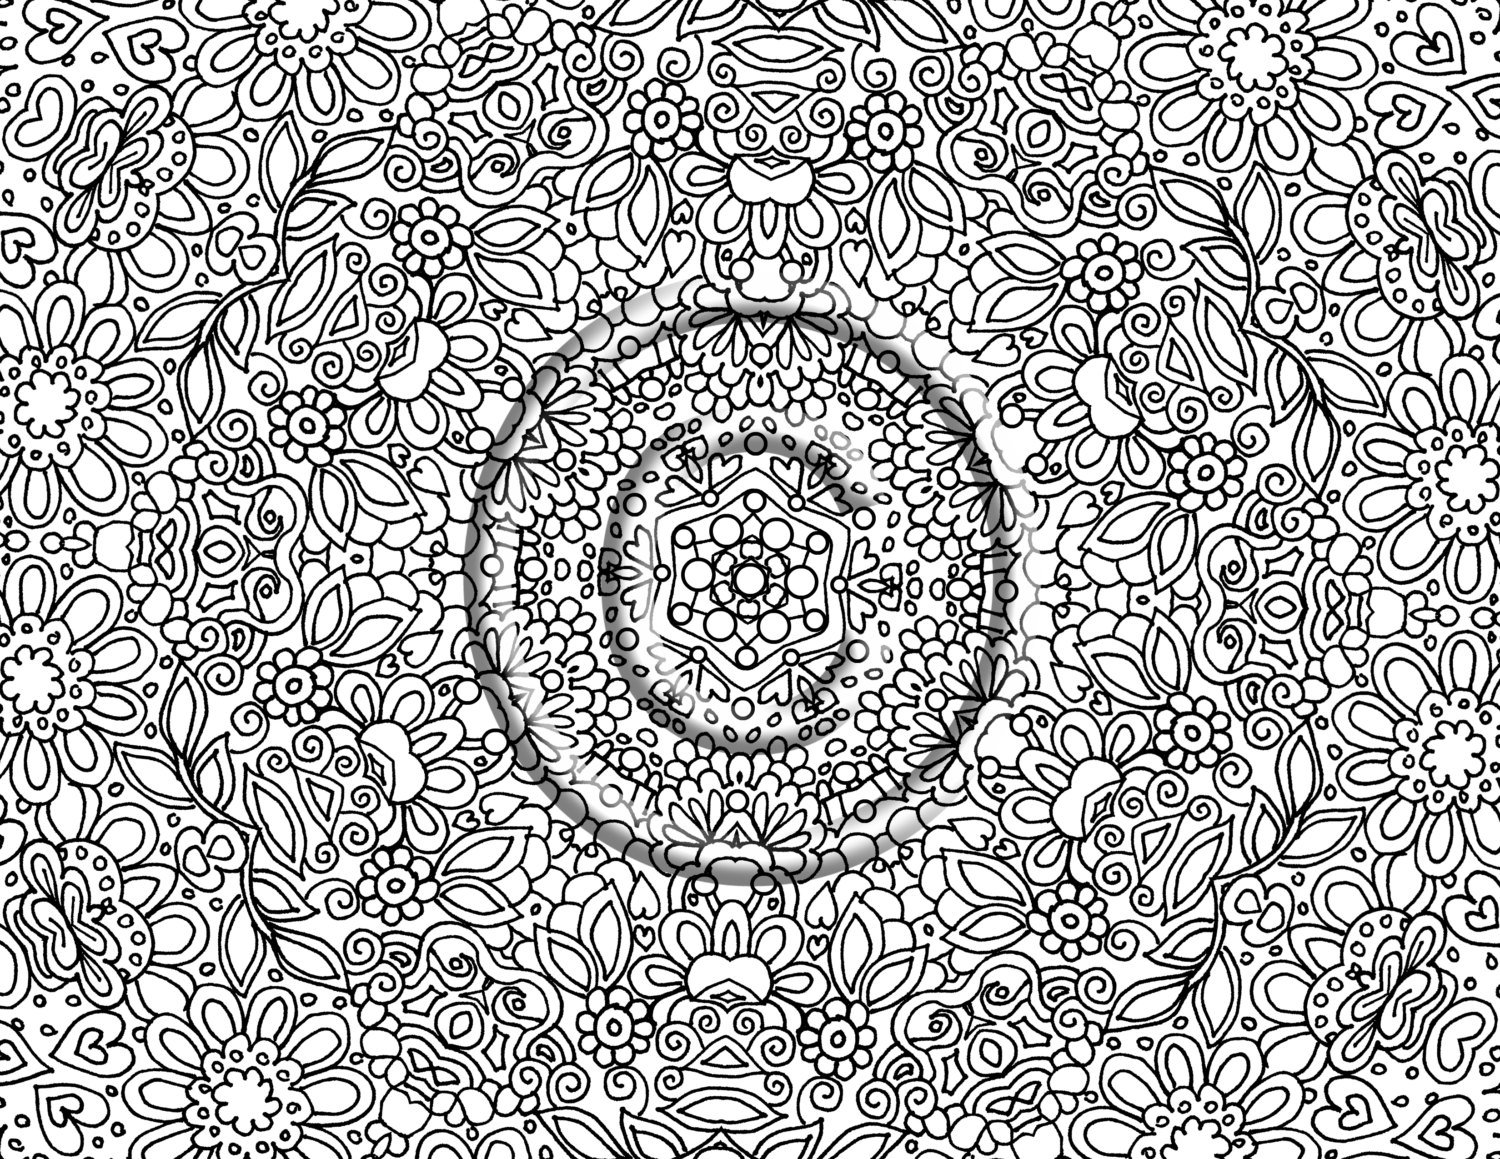 Detailed Coloring Page Picture Good Pages For Kids 7 Best Of